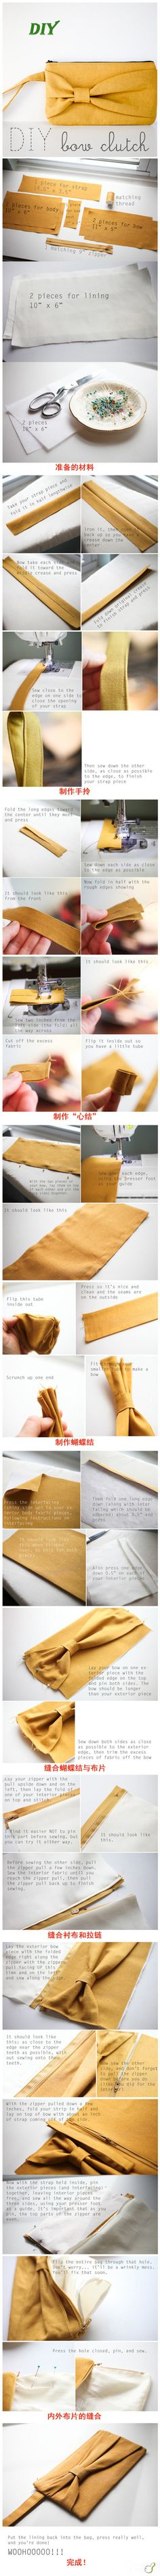 Handbags & Wallets - How to make a bow clutch - tutorial. I think im going for the matching set of yellow bow on my sewing board (check it out! Cute matching scarf and ear warmer tutorials!) - How should we combine handbags and wallets? Sewing Hacks, Sewing Tutorials, Sewing Crafts, Sewing Projects, Sewing Patterns, Tutorial Sewing, Purse Patterns, Sewing Ideas, Diy Projects